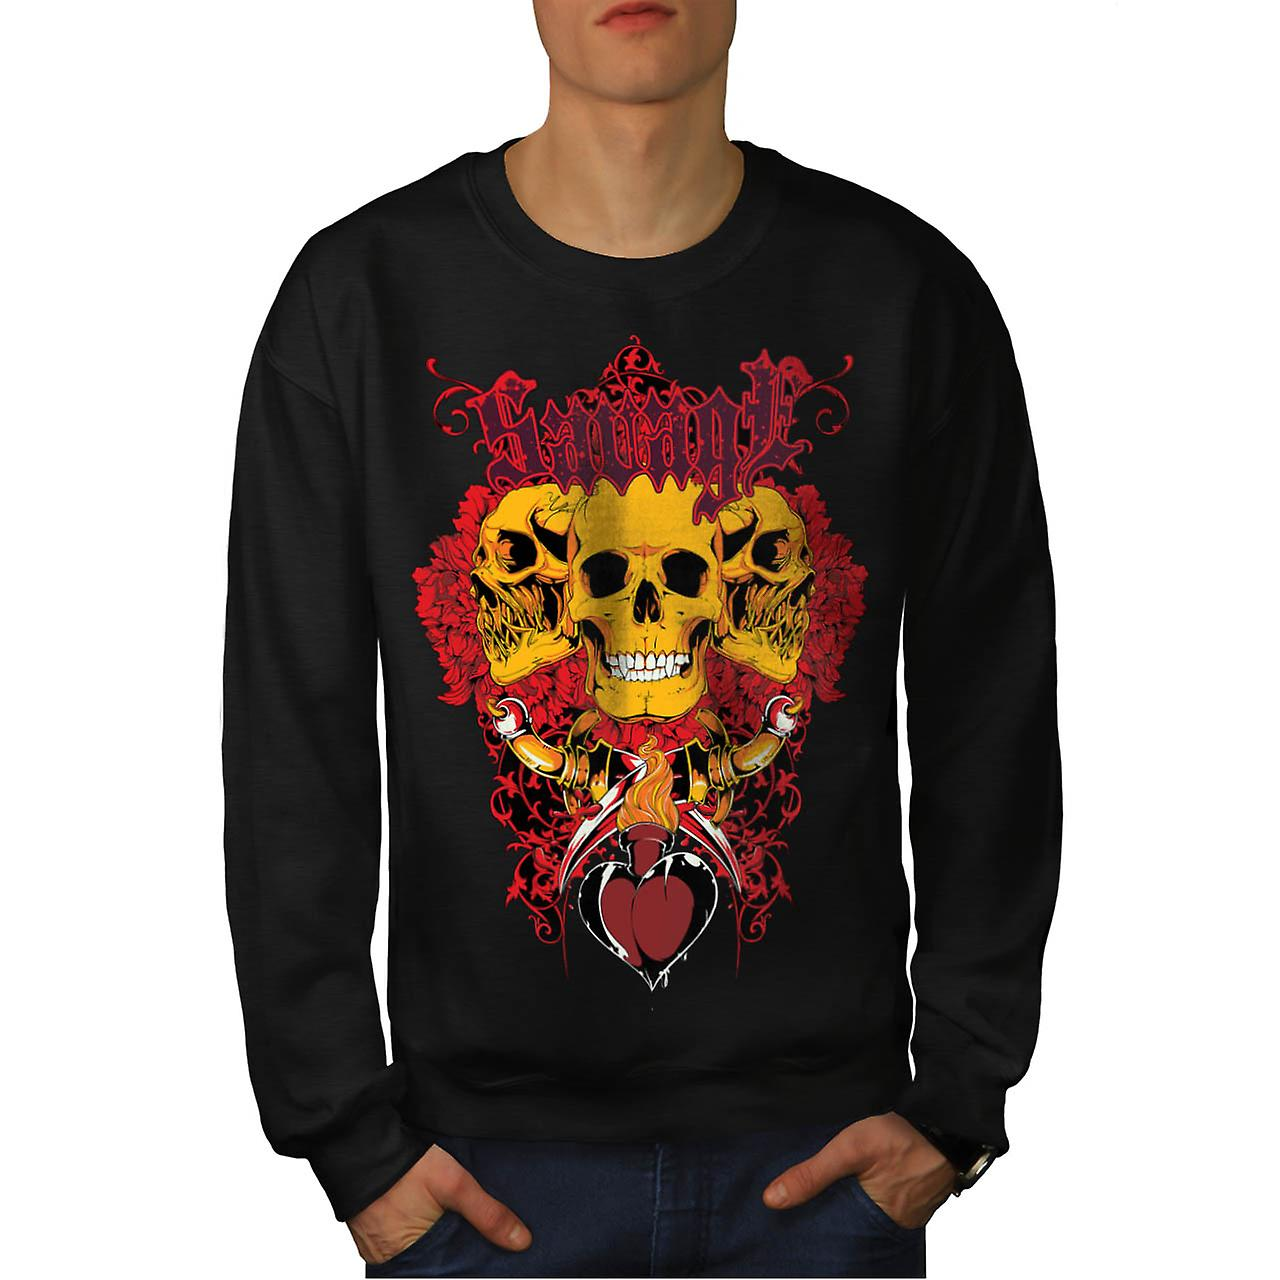 Savage Monster dood Giant Skull mannen zwart Sweatshirt | Wellcoda